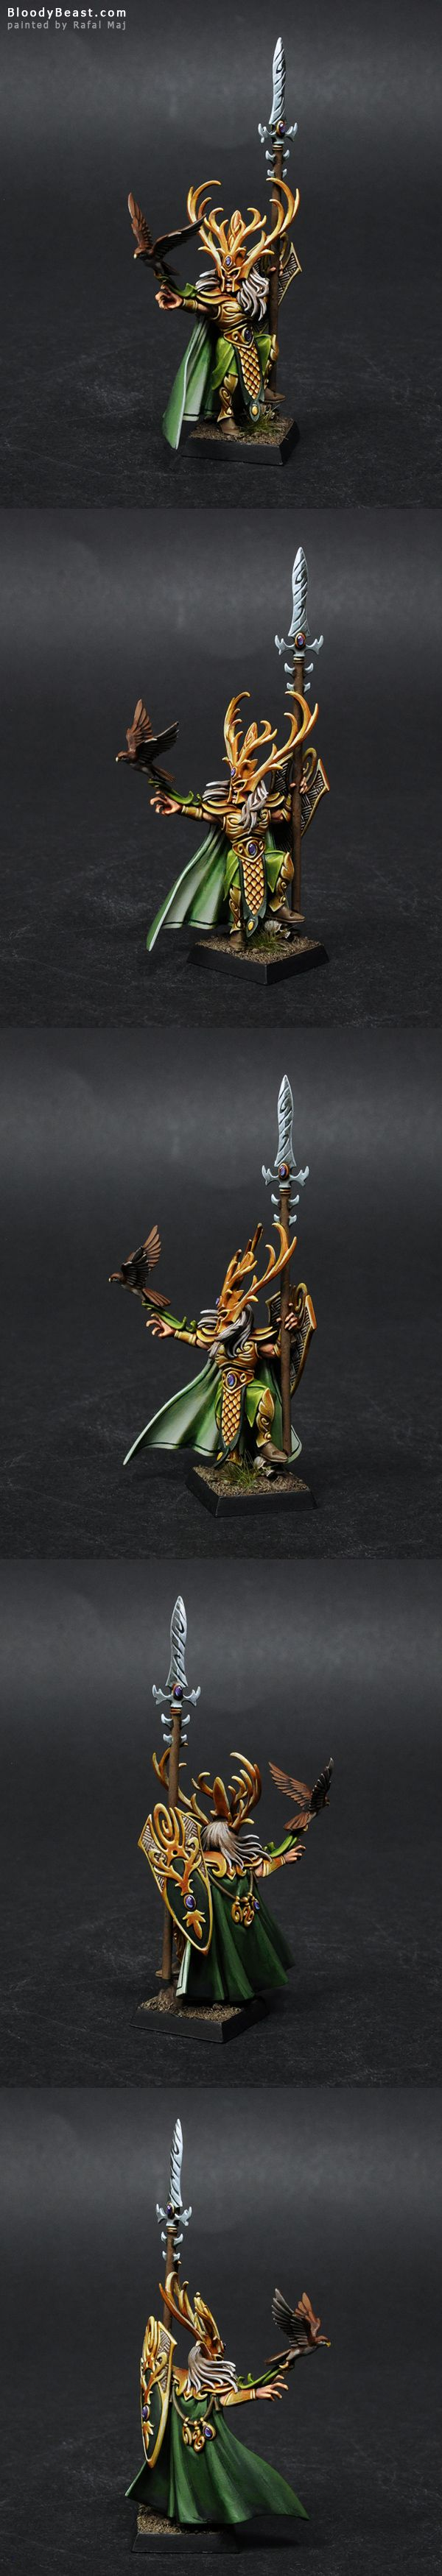 Wood Elves Araloth painted by Rafal Maj (BloodyBeast.com)